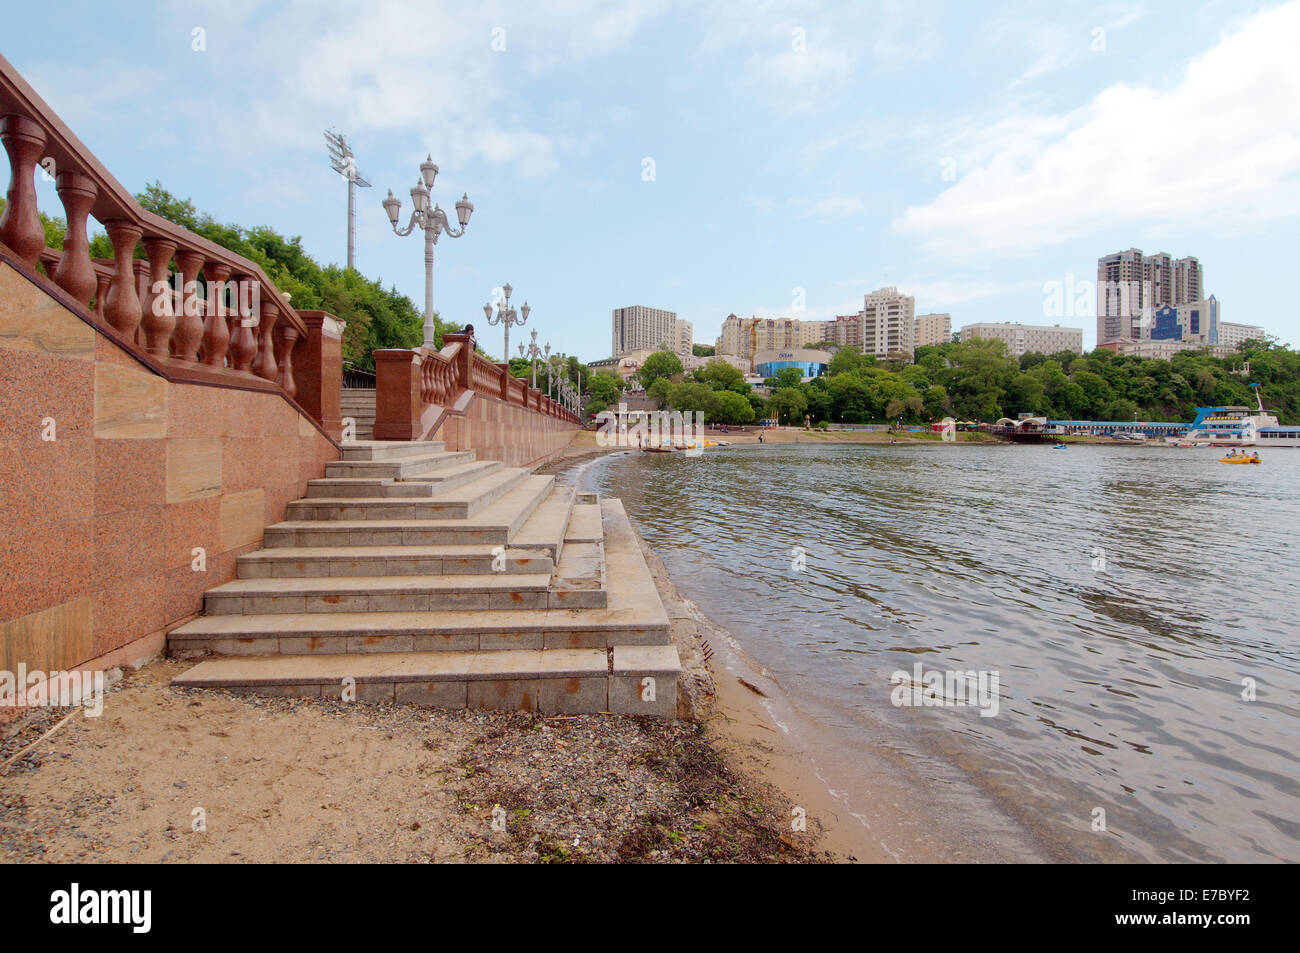 Stairway to the beach on the waterfront in Vladivostok, Far East, Primorye, Russia - Stock Image